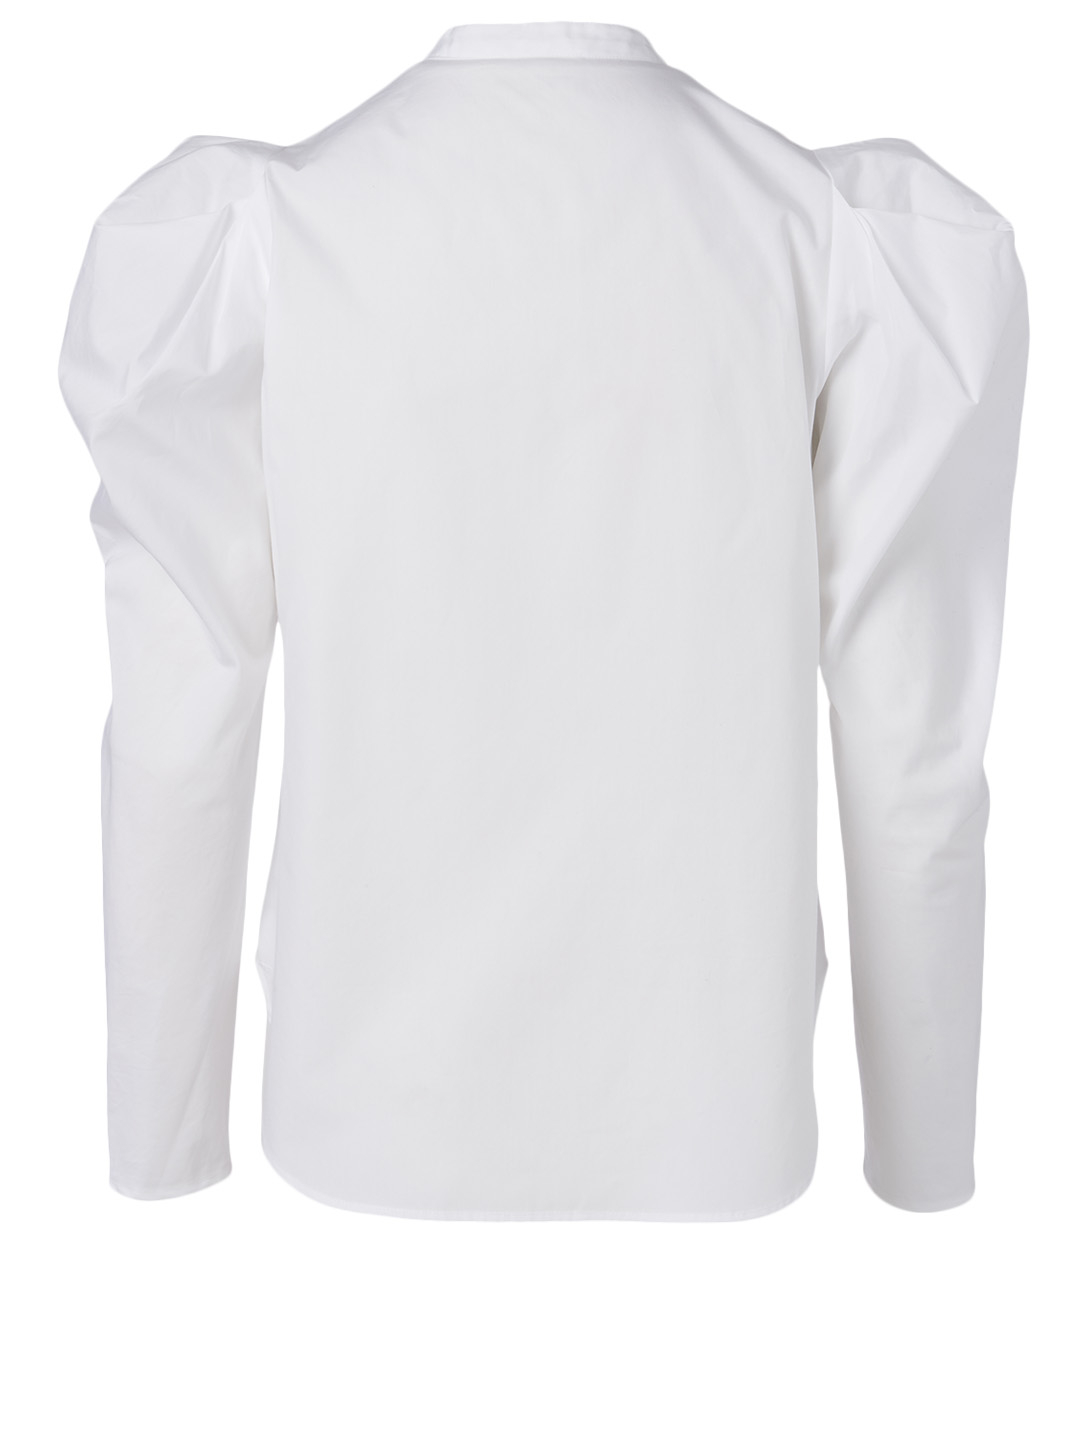 A.L.C. Hudson Cotton Top Women's White